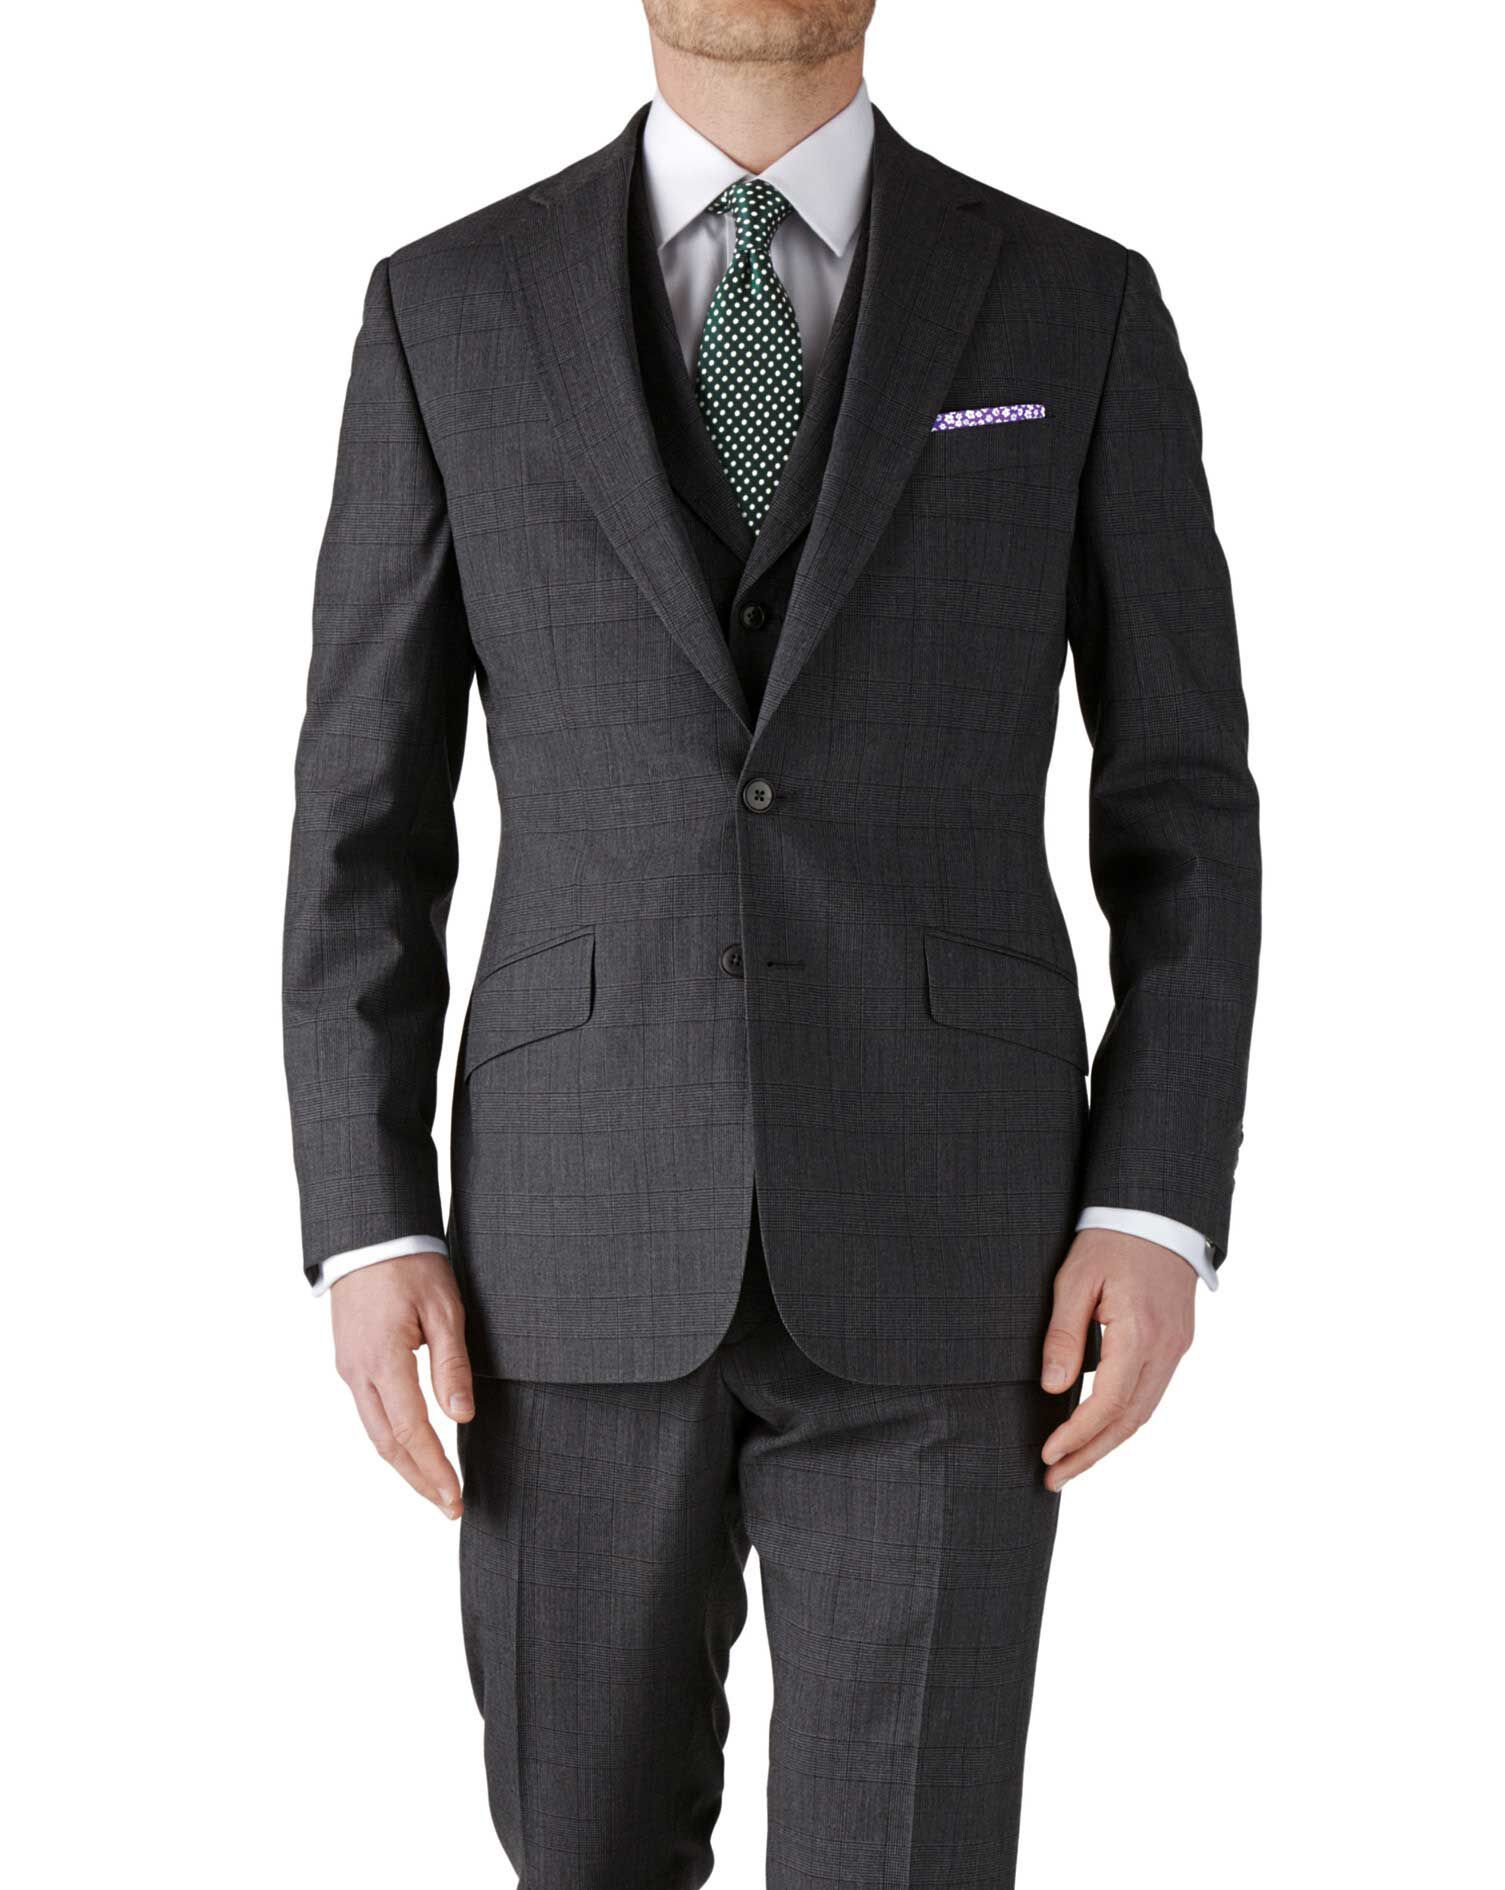 Grey Check Slim Fit Flannel Business Suit Wool Jacket Size 38 Long by Charles Tyrwhitt